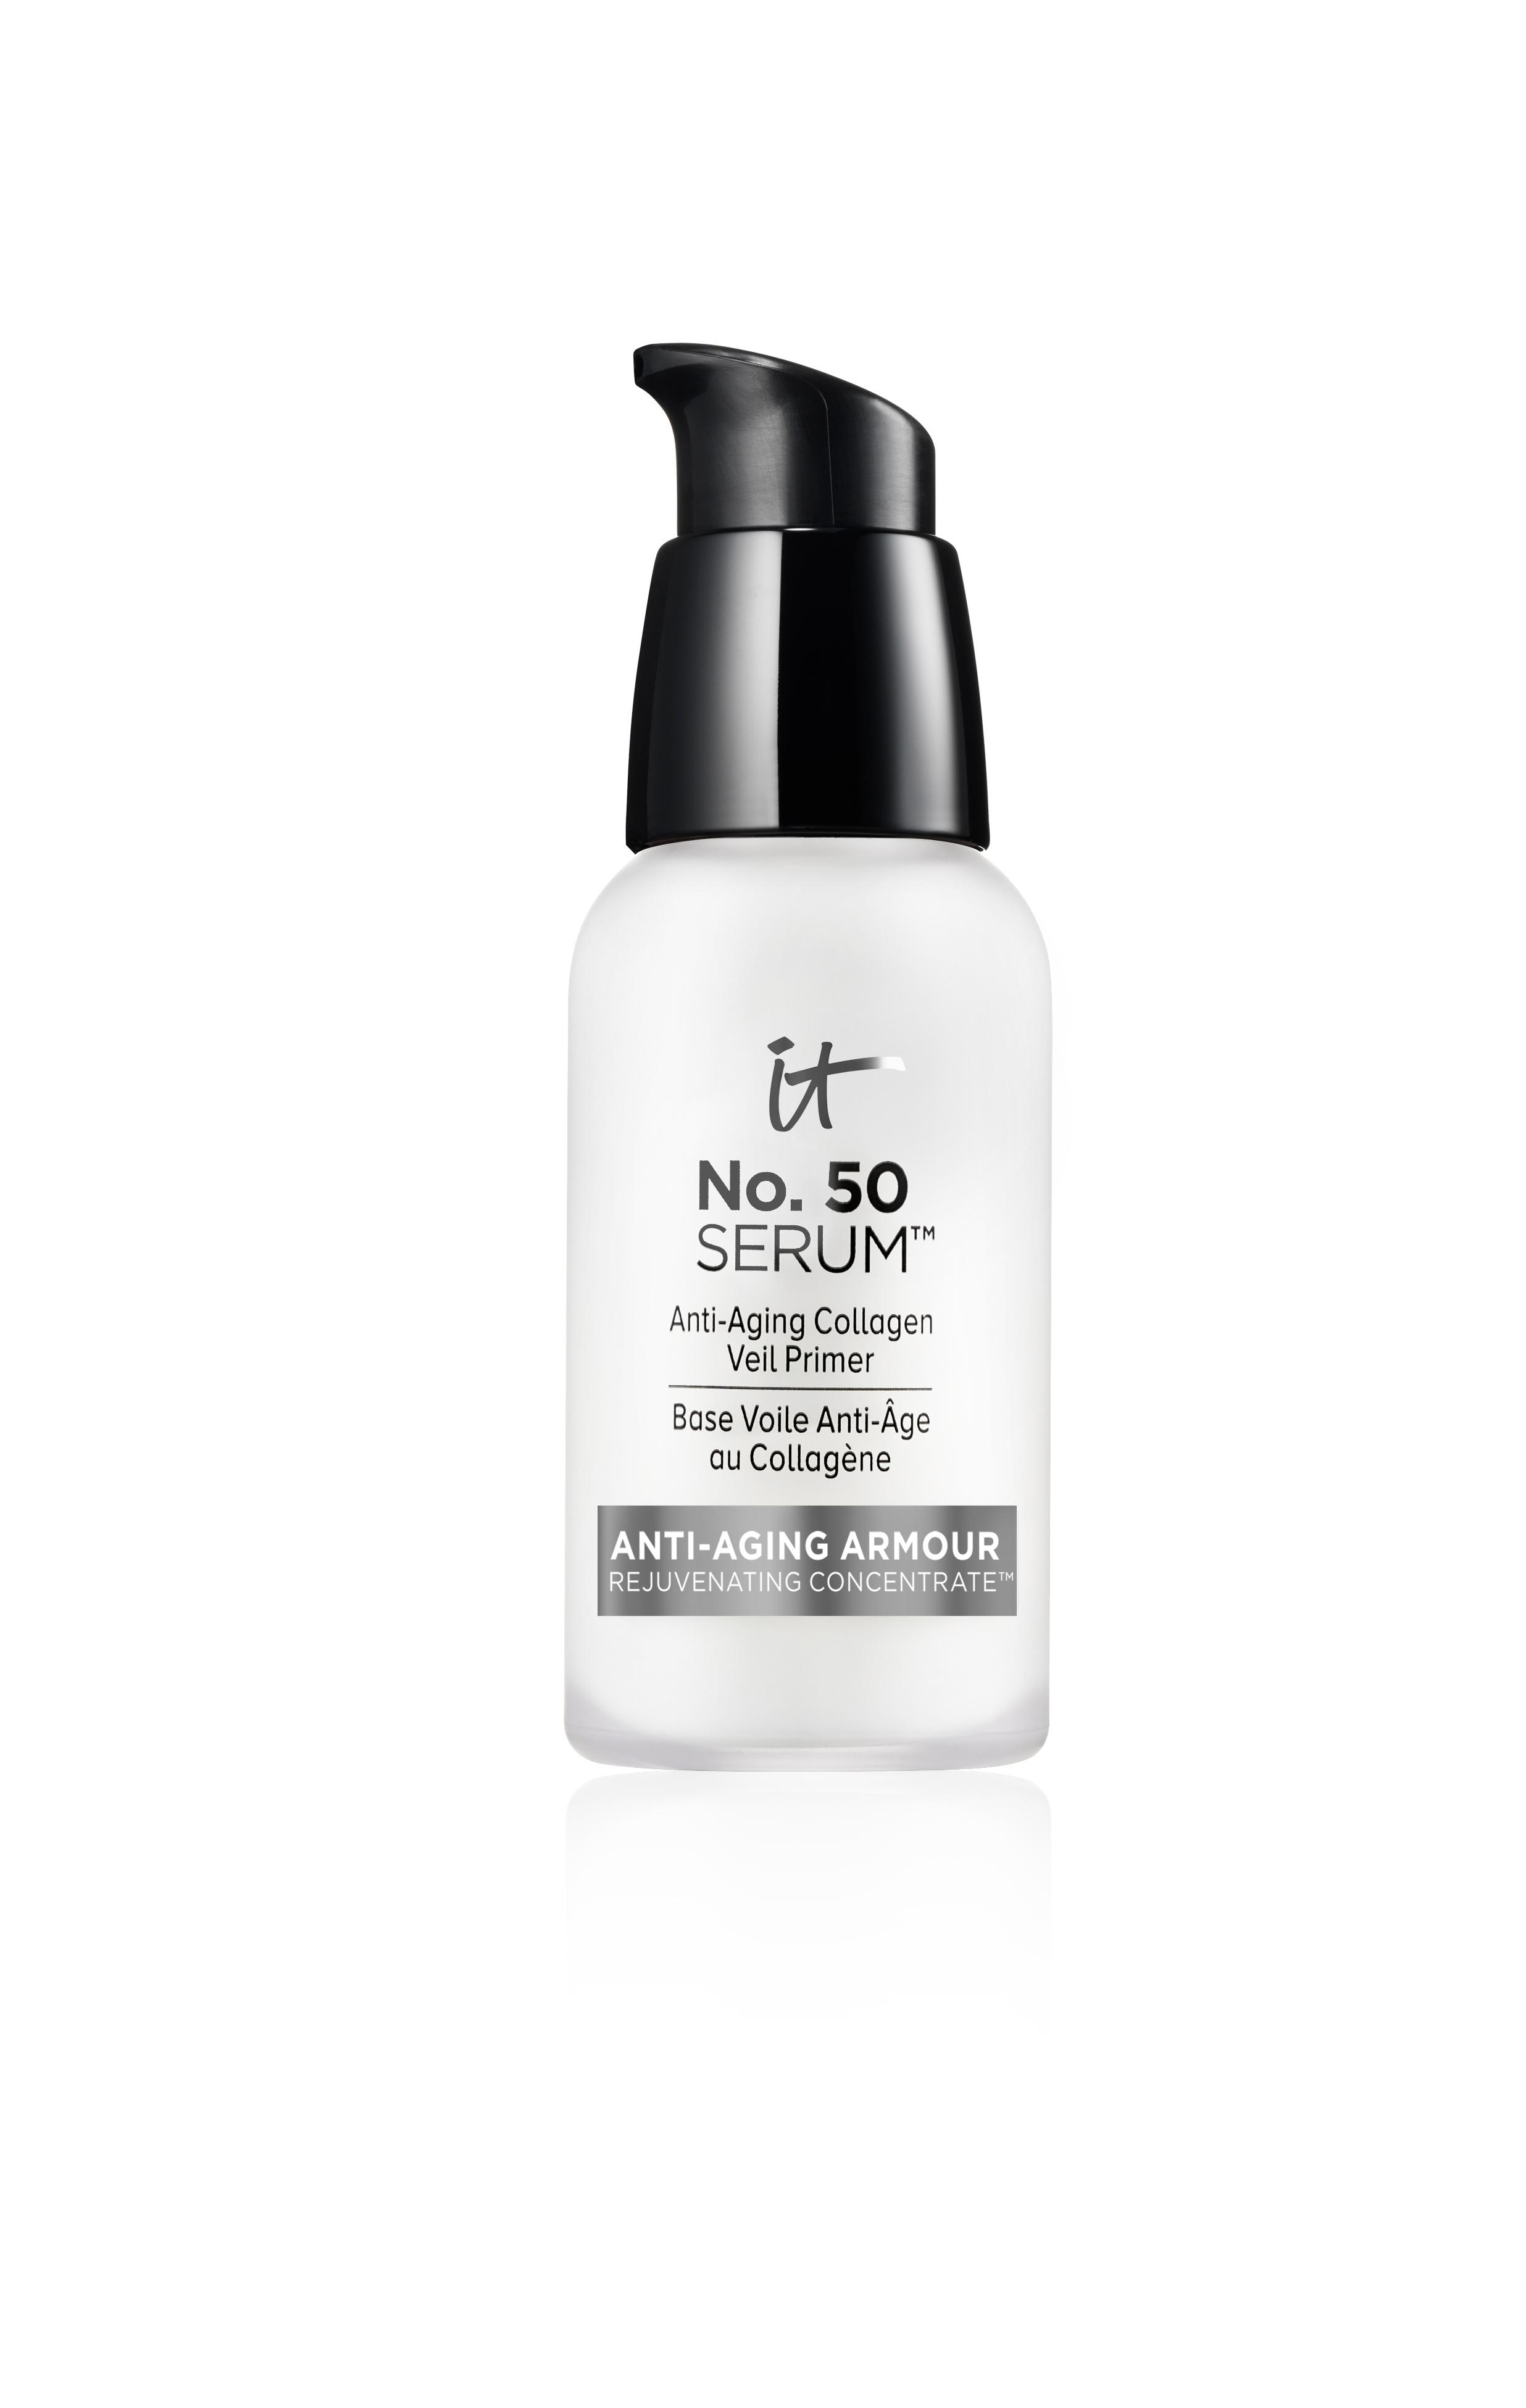 IT Cosmetics No. 50 Serum (IT Cosmetics)